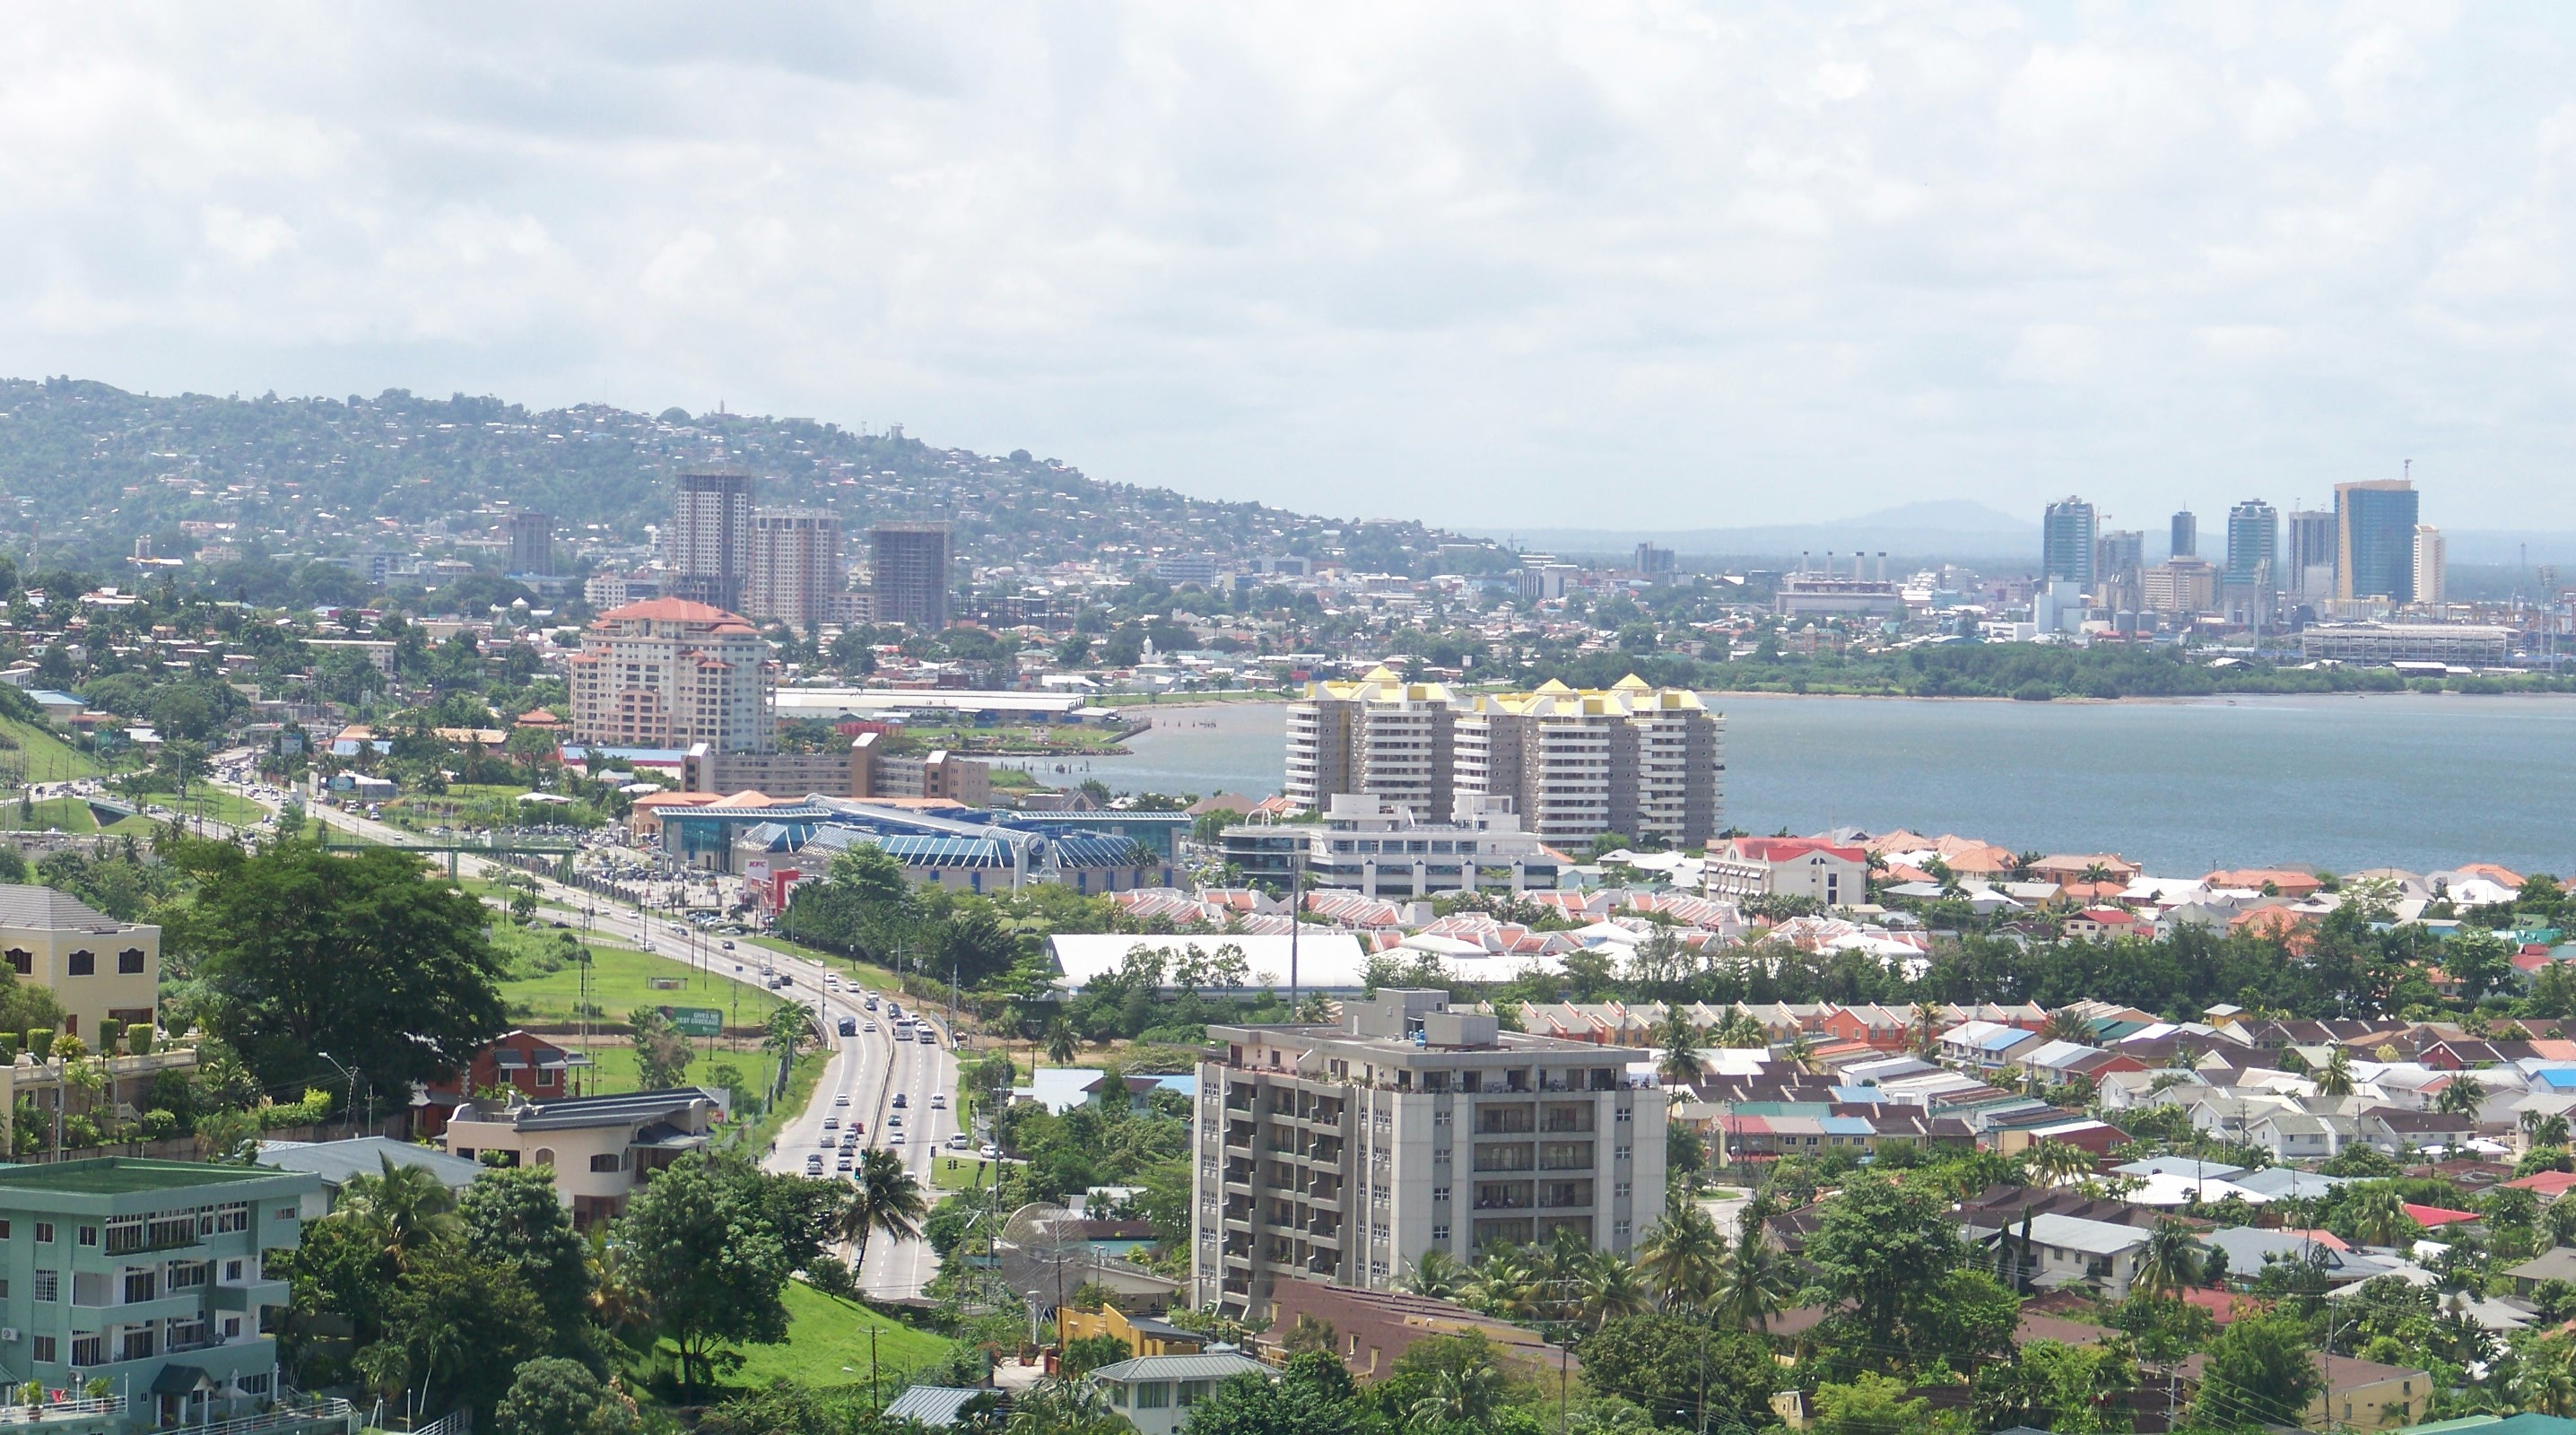 Port_of_Spain_Trinidad